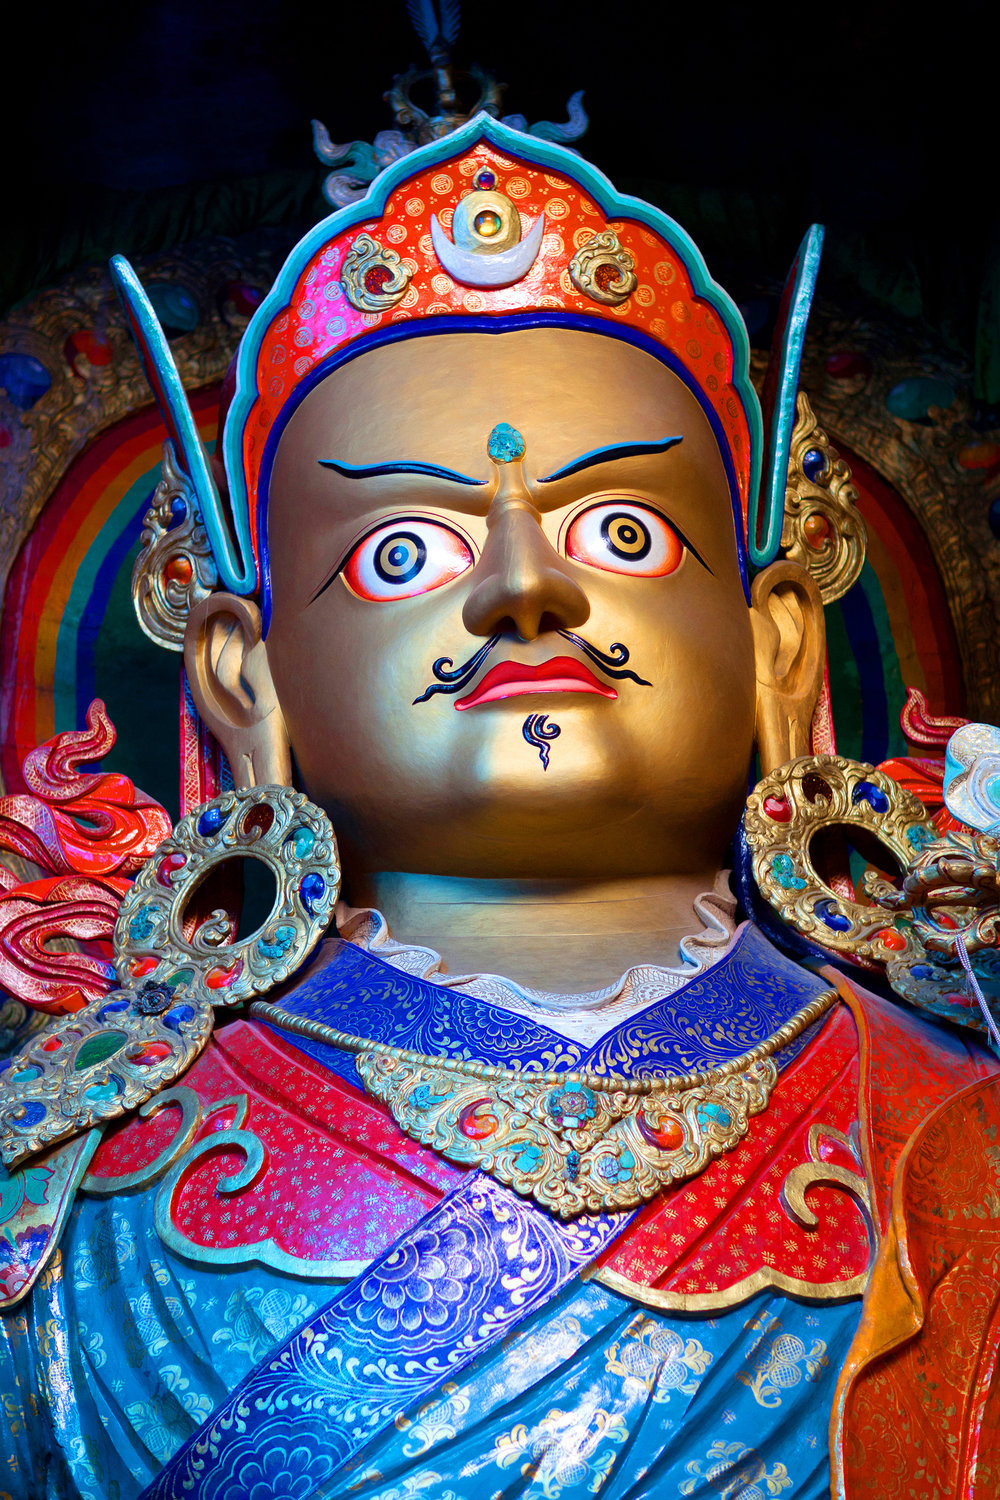 Guru Rinpoche - Padmasambhava, a great 8th century Buddhist master and founder of the Nyingma lineage of Tibetan Buddhism